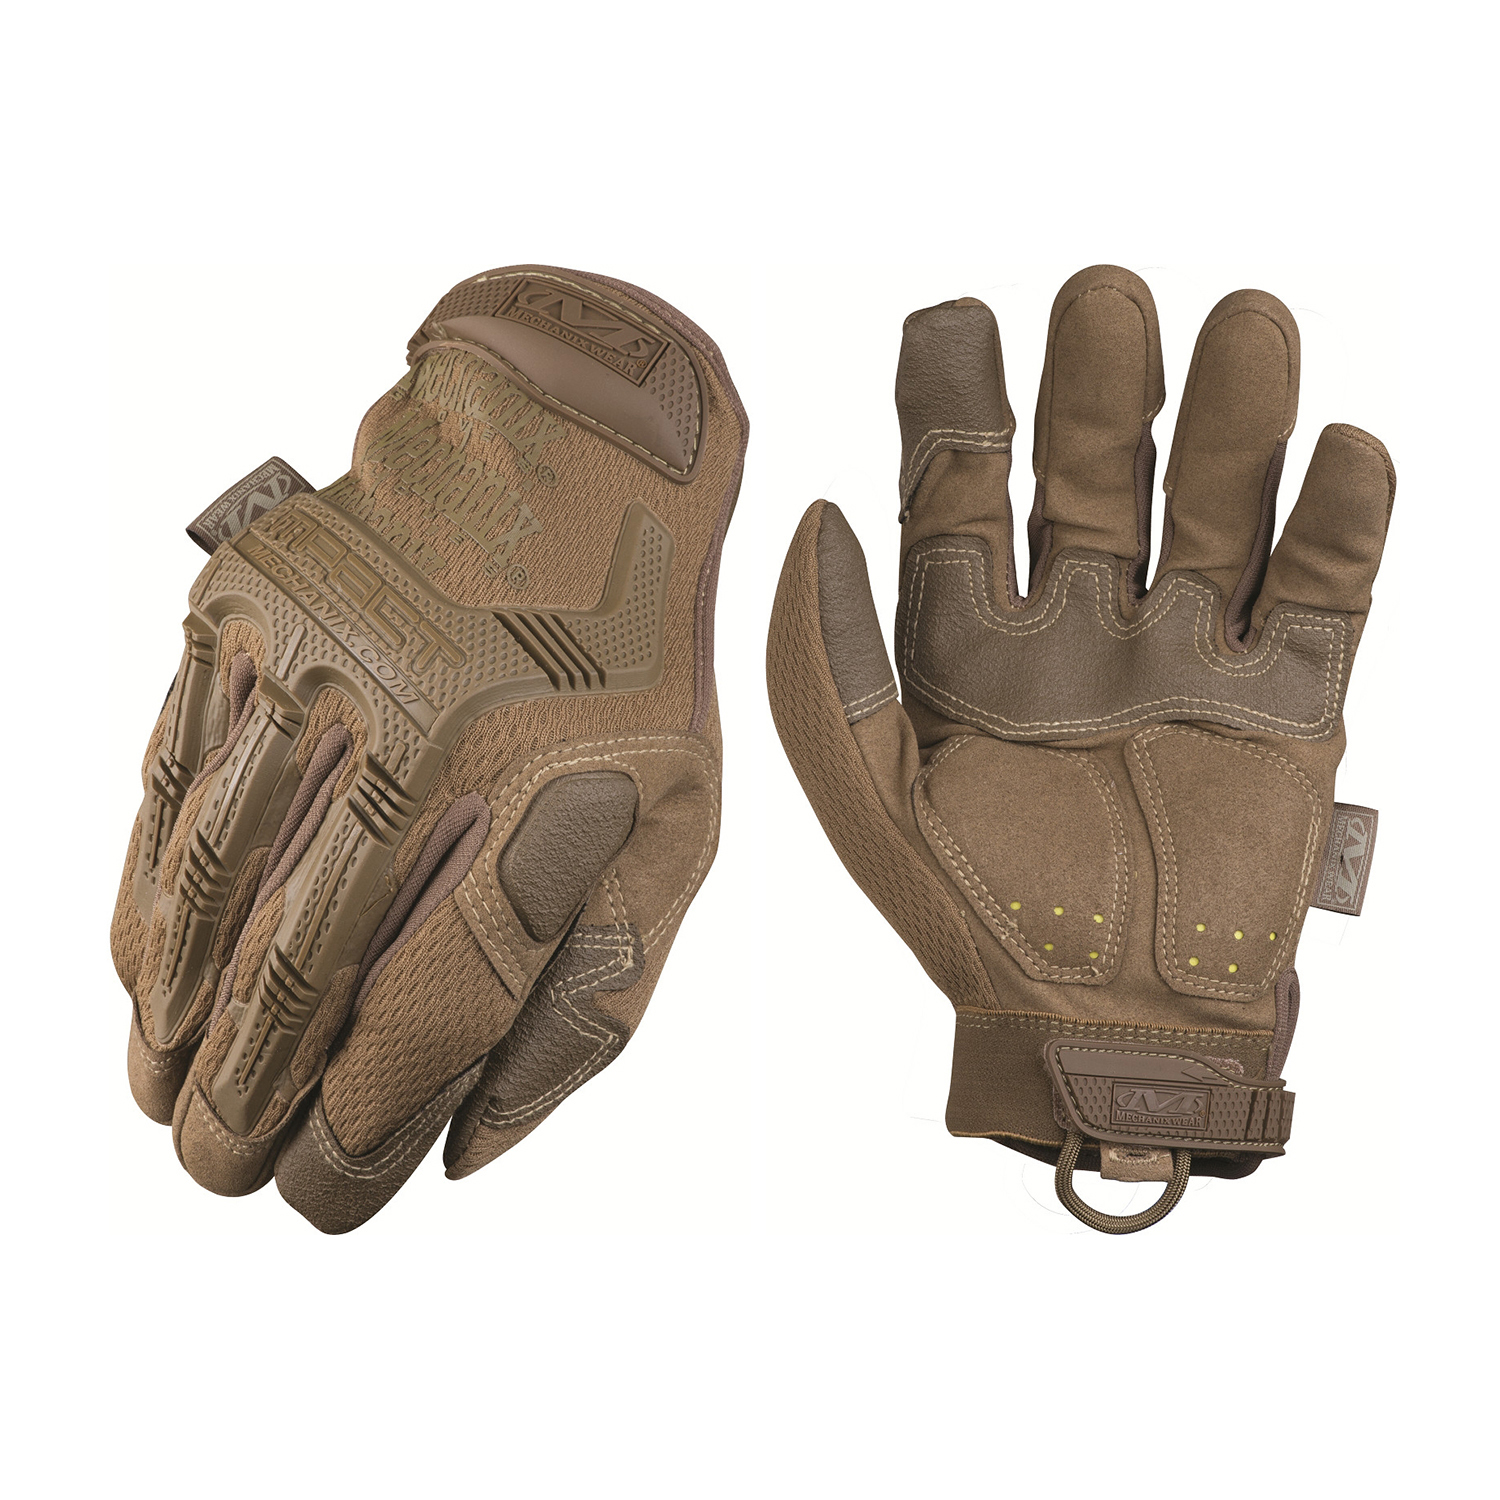 Ebay uk leather work gloves - Mechanix Wear M Pact Covert Work Duty Gloves